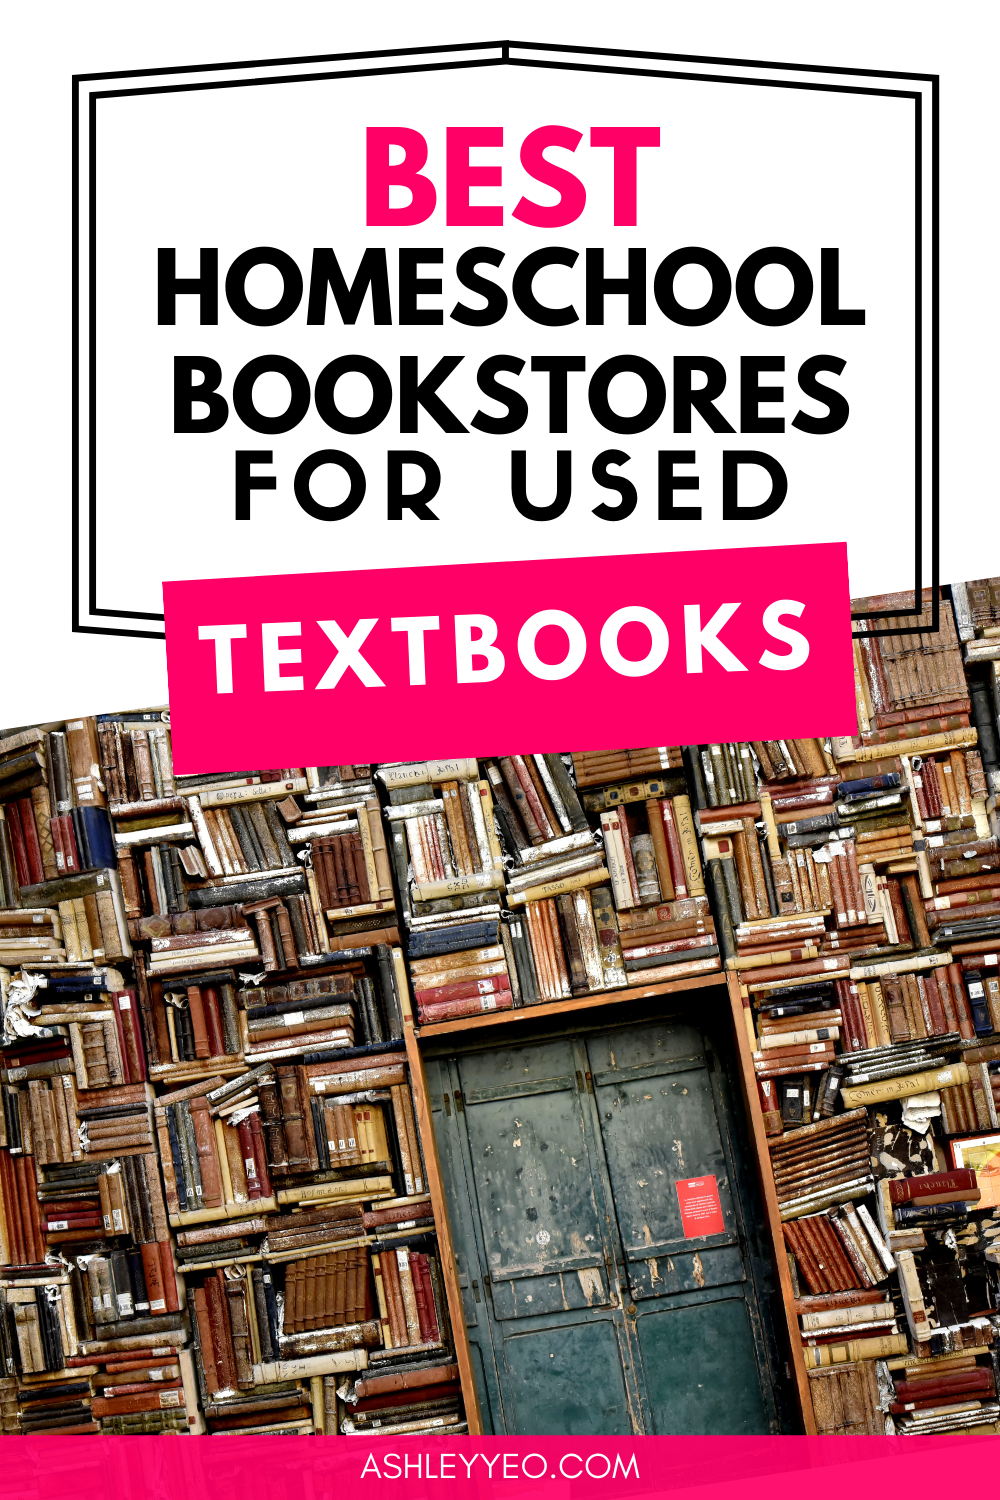 Best Homeschool Bookstores for Buying Used Homeschool Textbooks